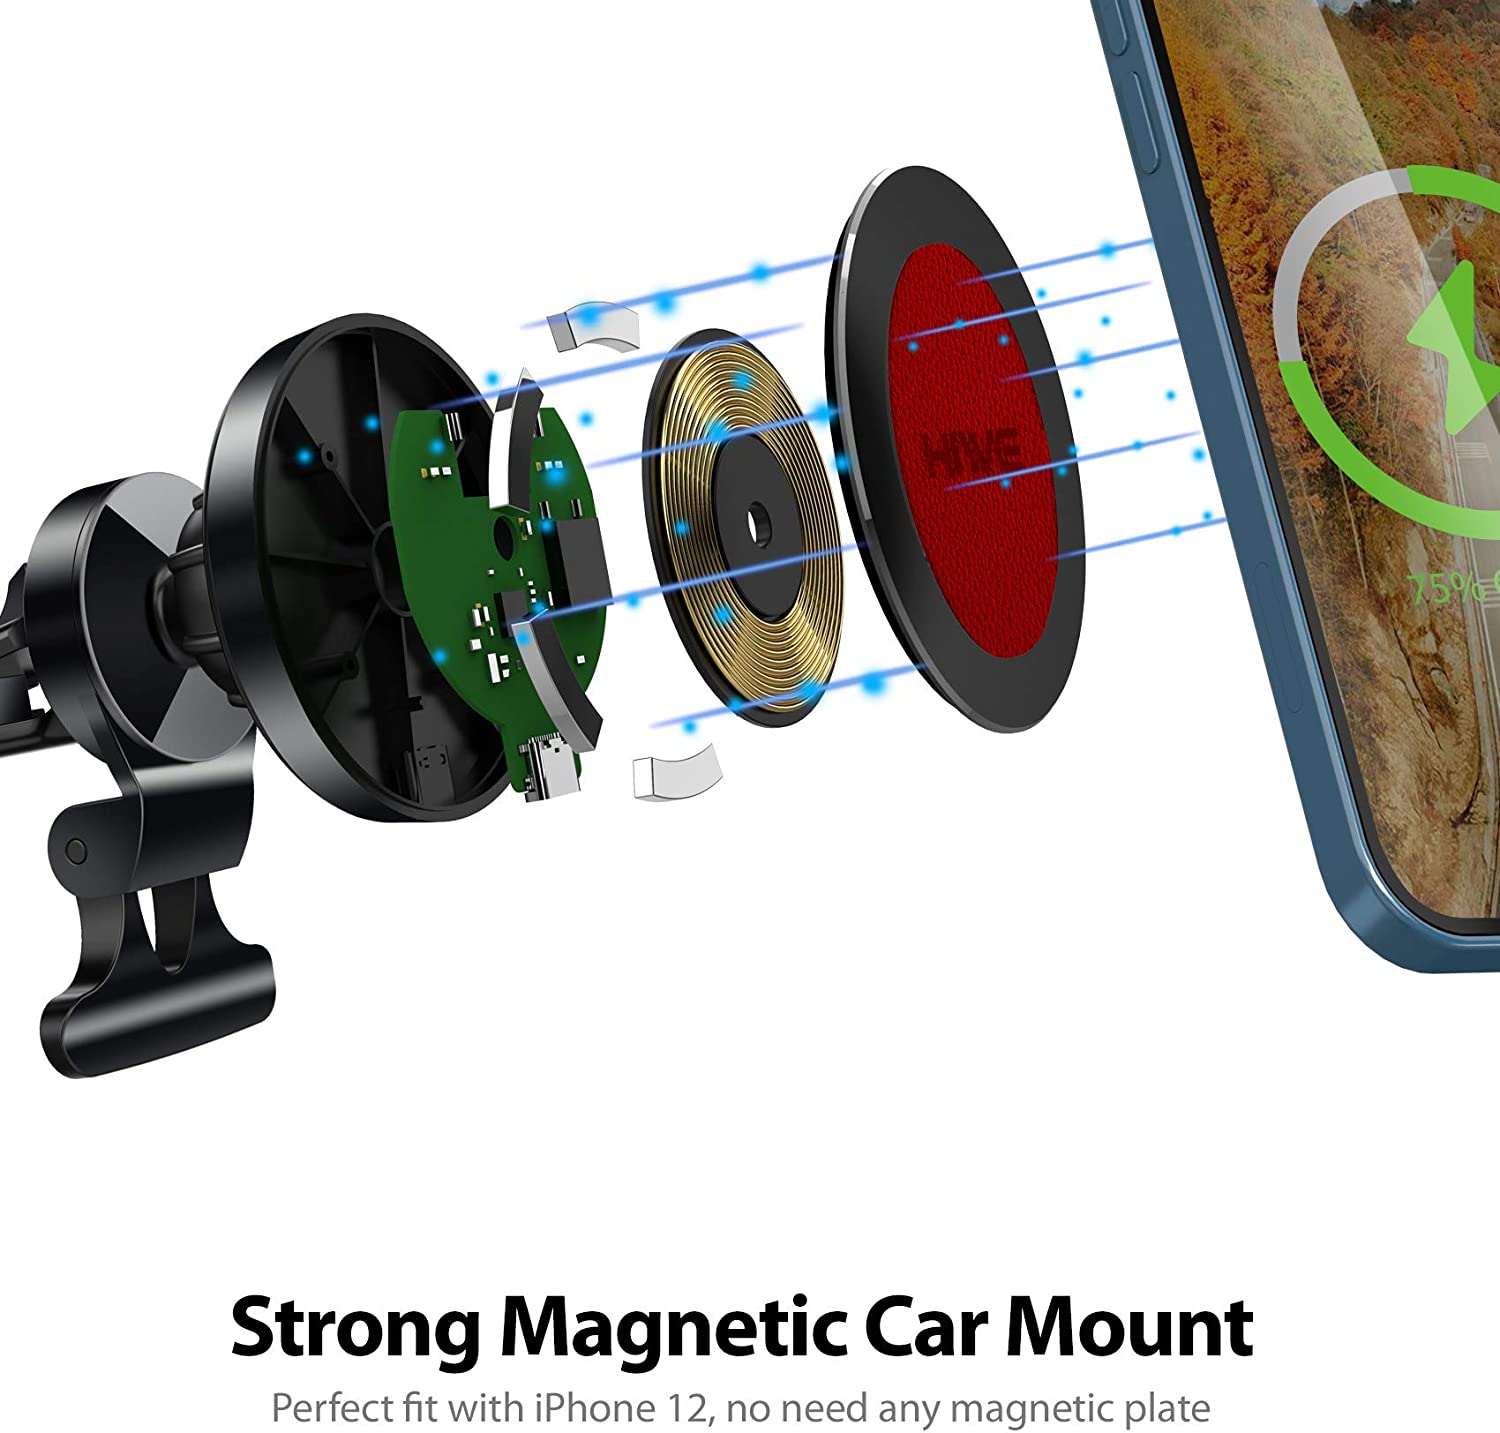 Magnetic Phone Car Mount for iPhone 12-15W Fast Charging Car Phone Holder Mount Compatible with iPhone 12//12 Mini//12 Pro//12 Pro Max,iPhone Wireless Car Charger Wireless Car Charger Dark Black